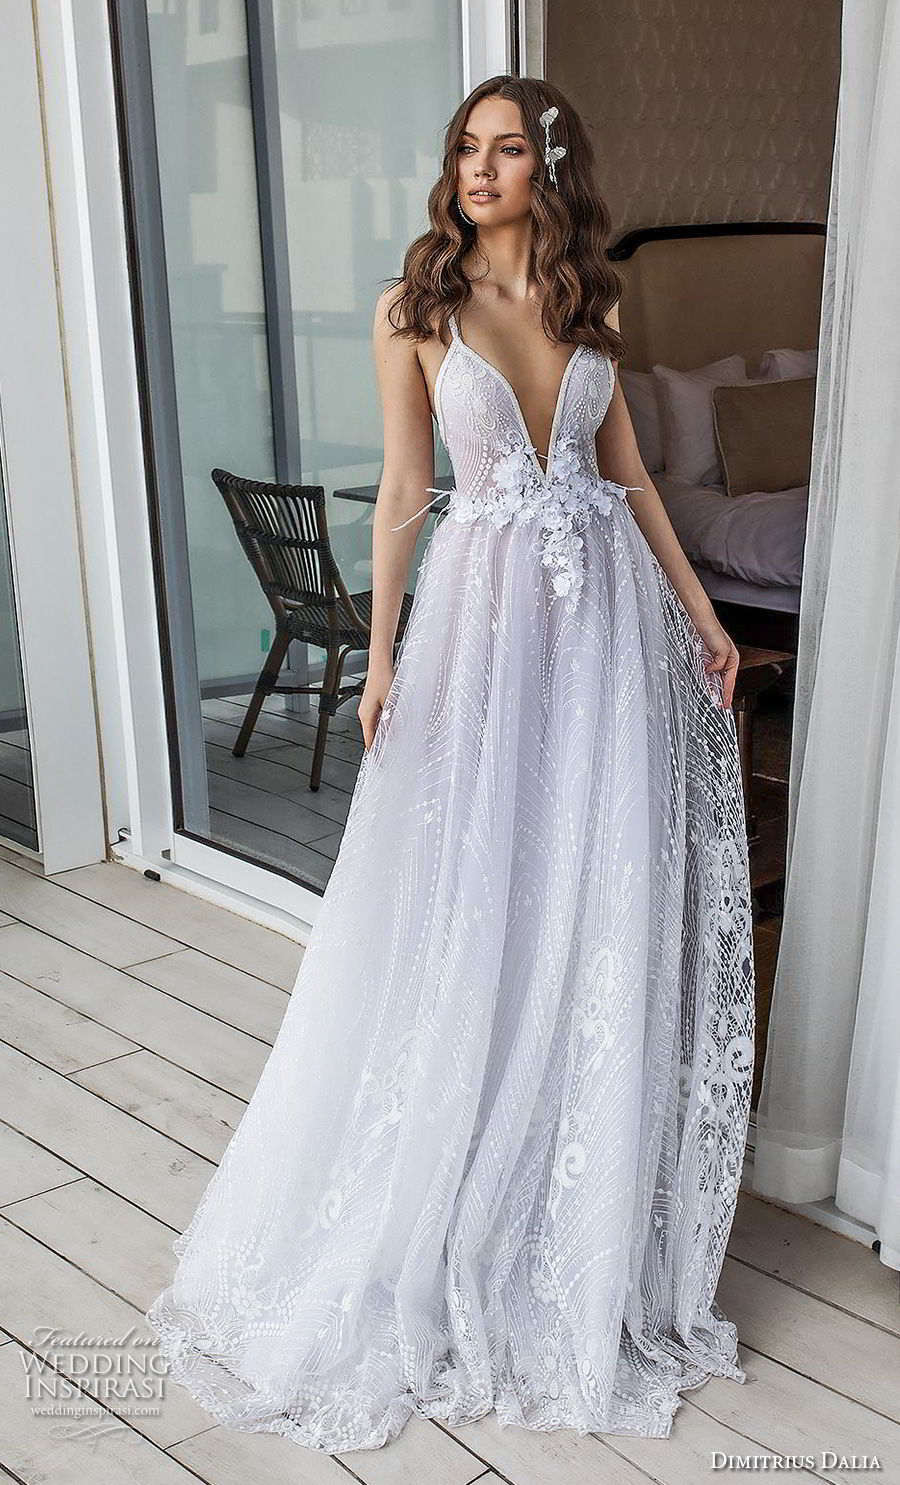 dimitrius dalia 2018 royal sleeveless thn strap deep sweetheart neckline full embellishment romantic sexy soft a line wedding dress open back sweep train (9) mv